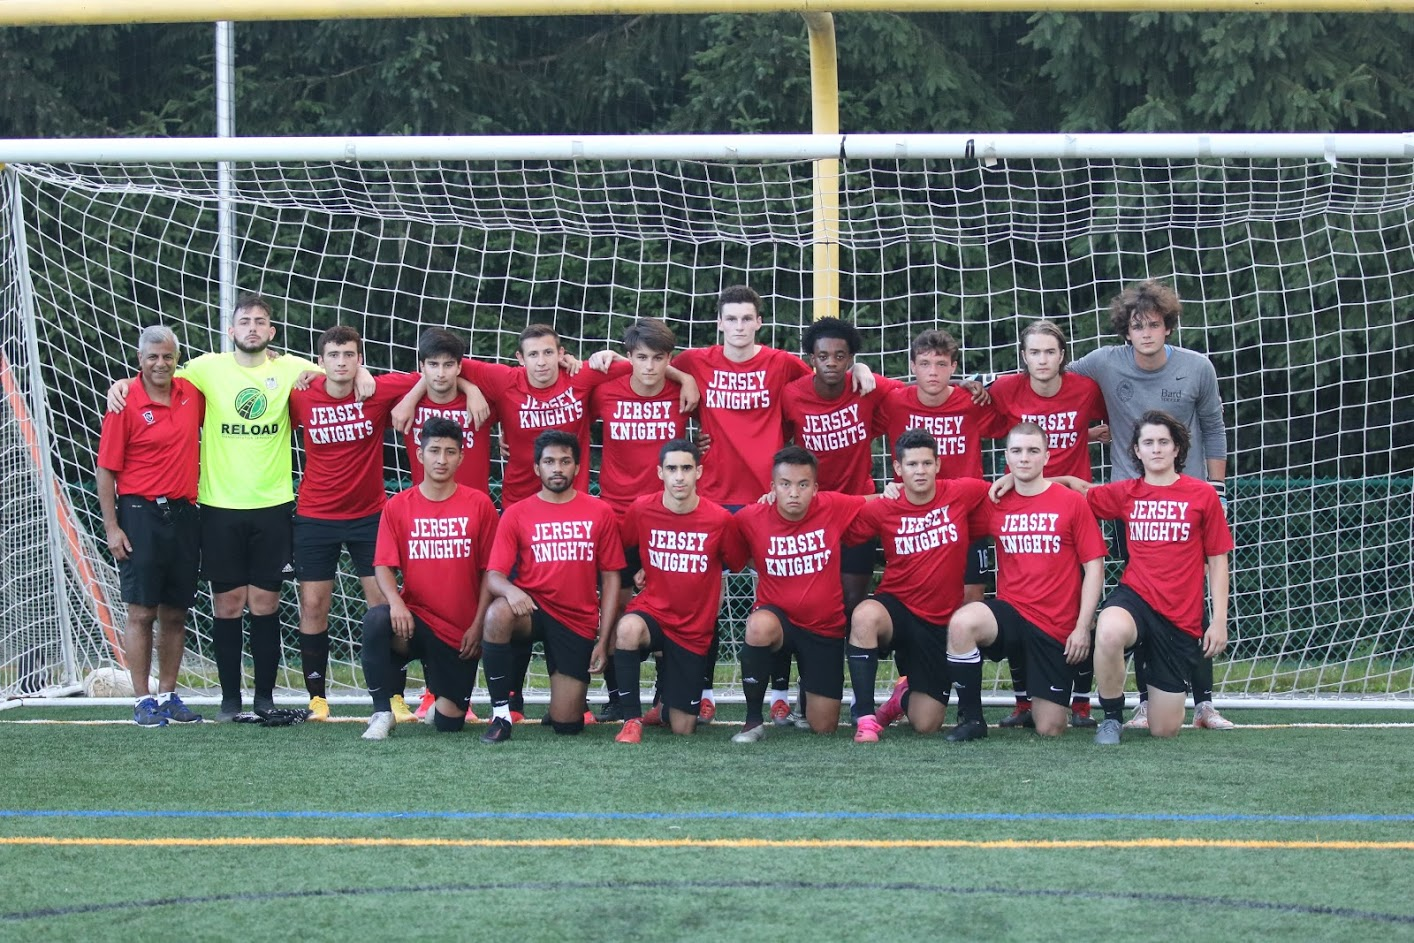 Jersey Knights U23M competing against Parsippany SC